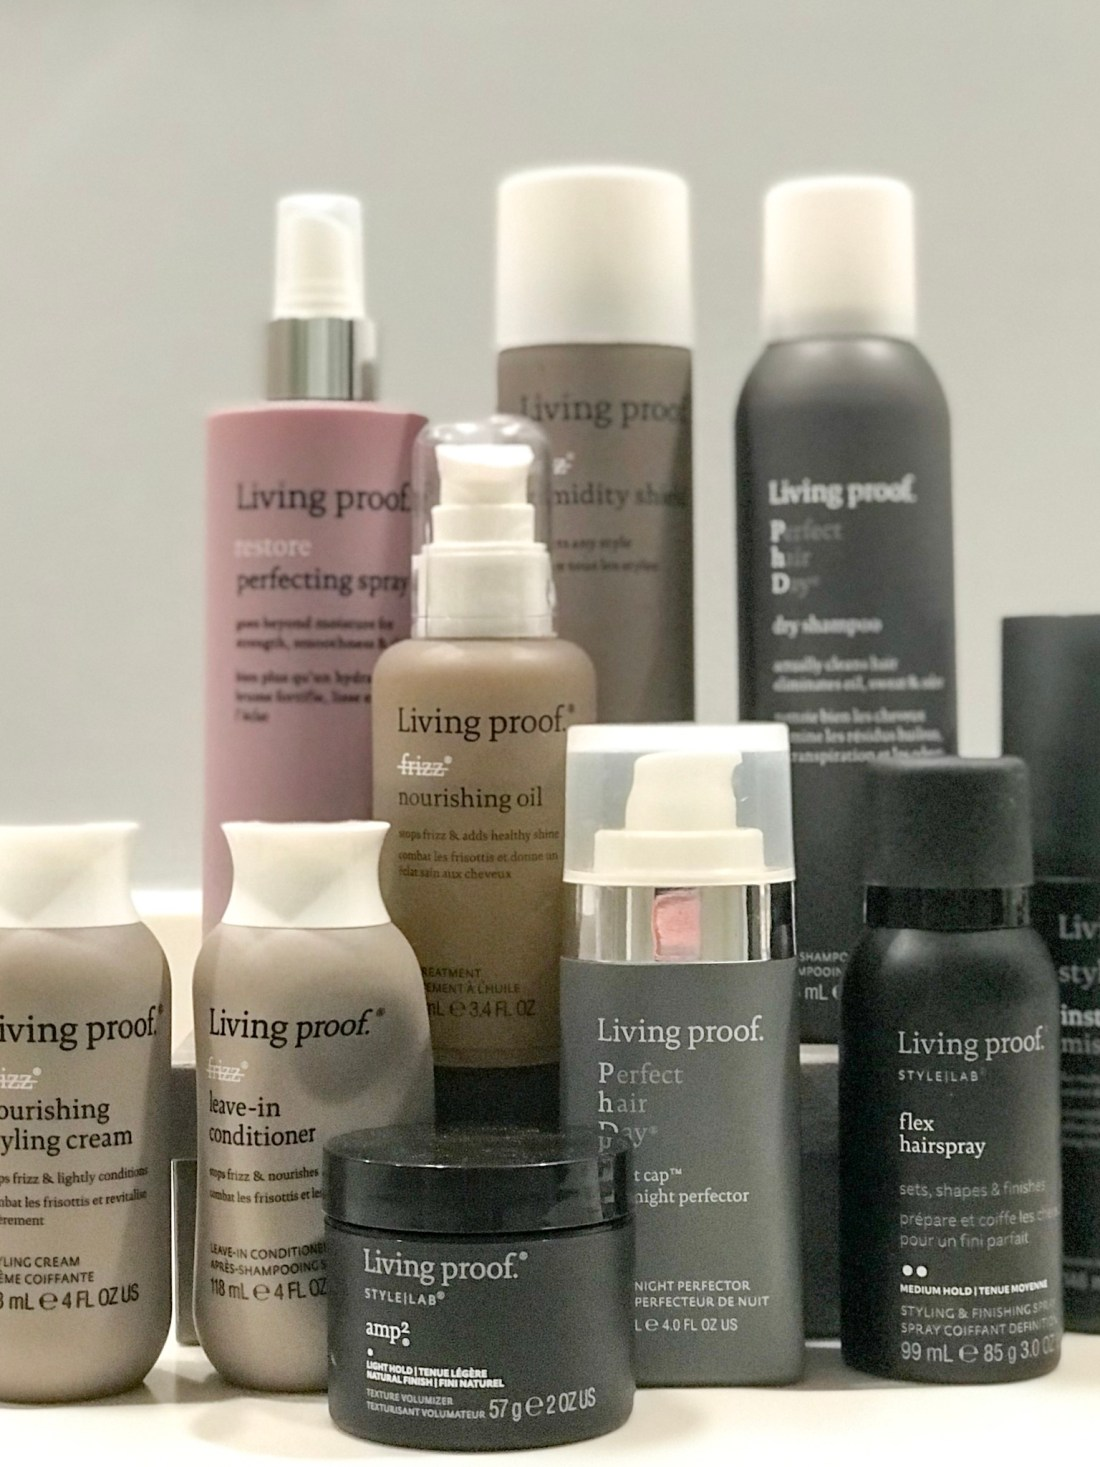 My favorite Living Proof products